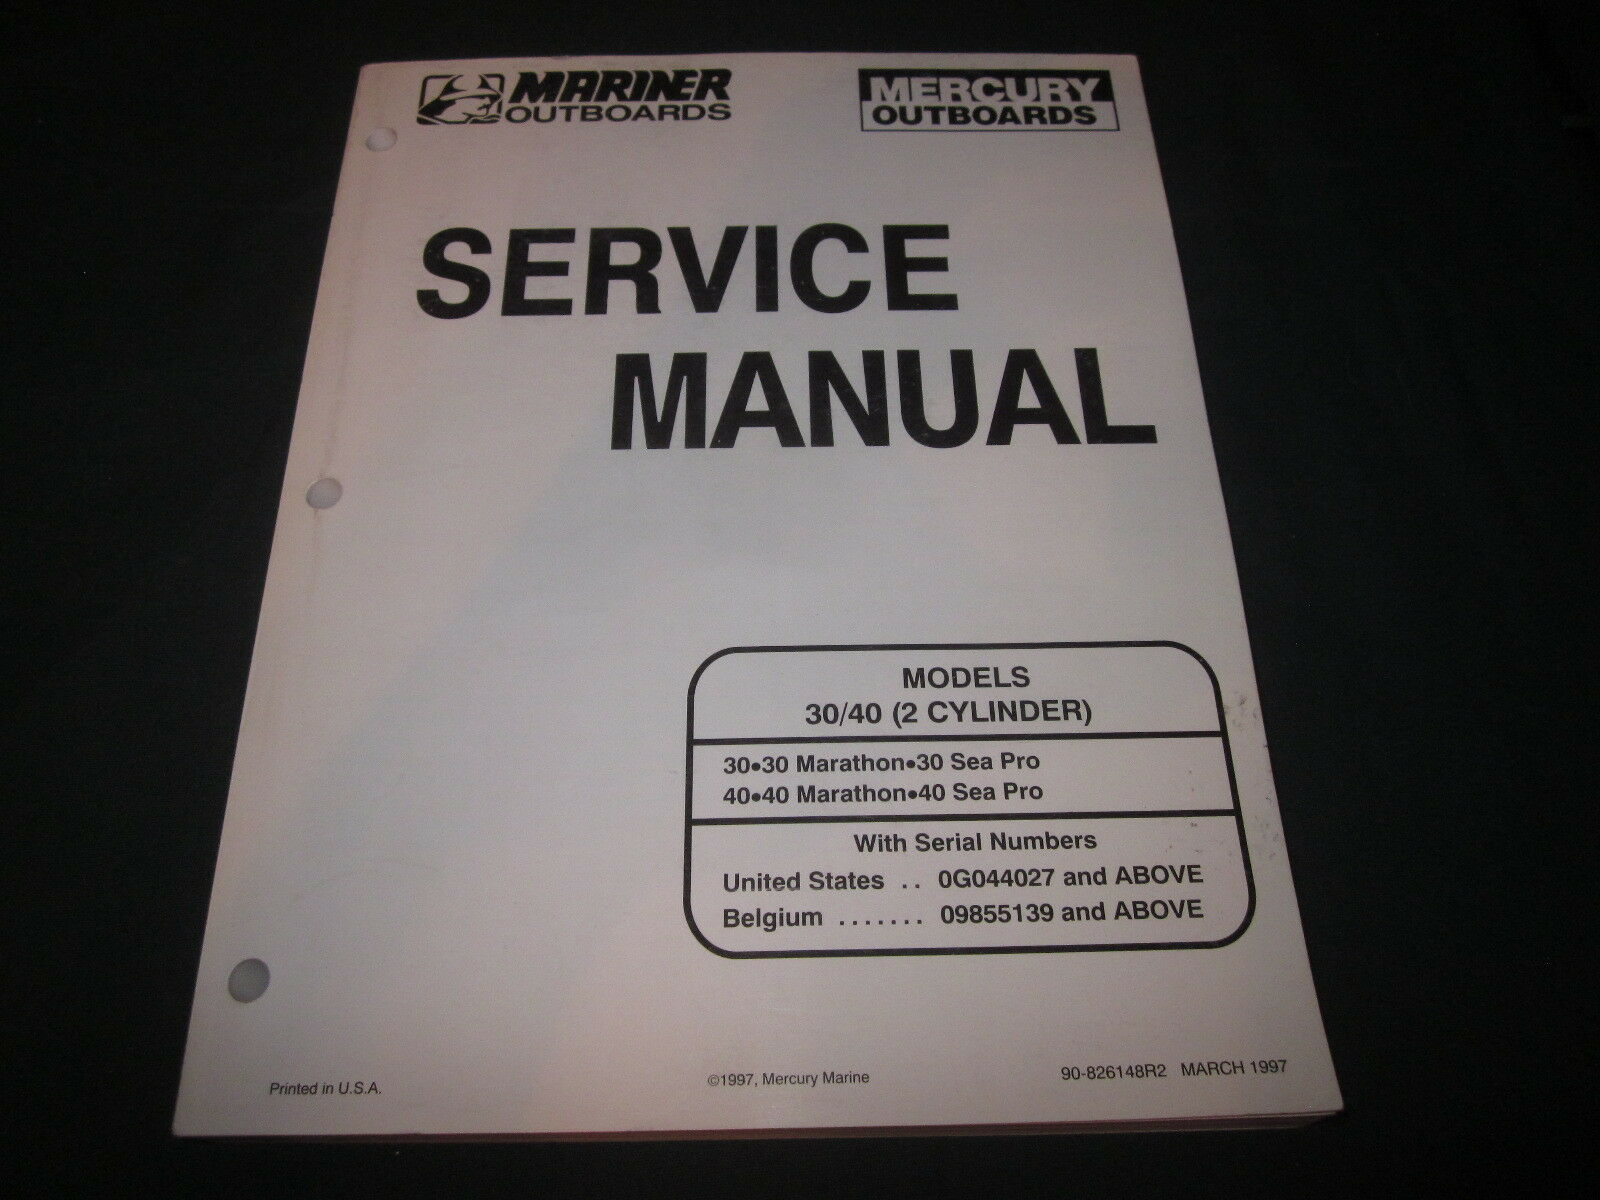 Oem Mercury & Mariner Outboard Service Manual 30 & 40 Marathon Sa Pro  90-826148 1 of 1Only 1 available See More